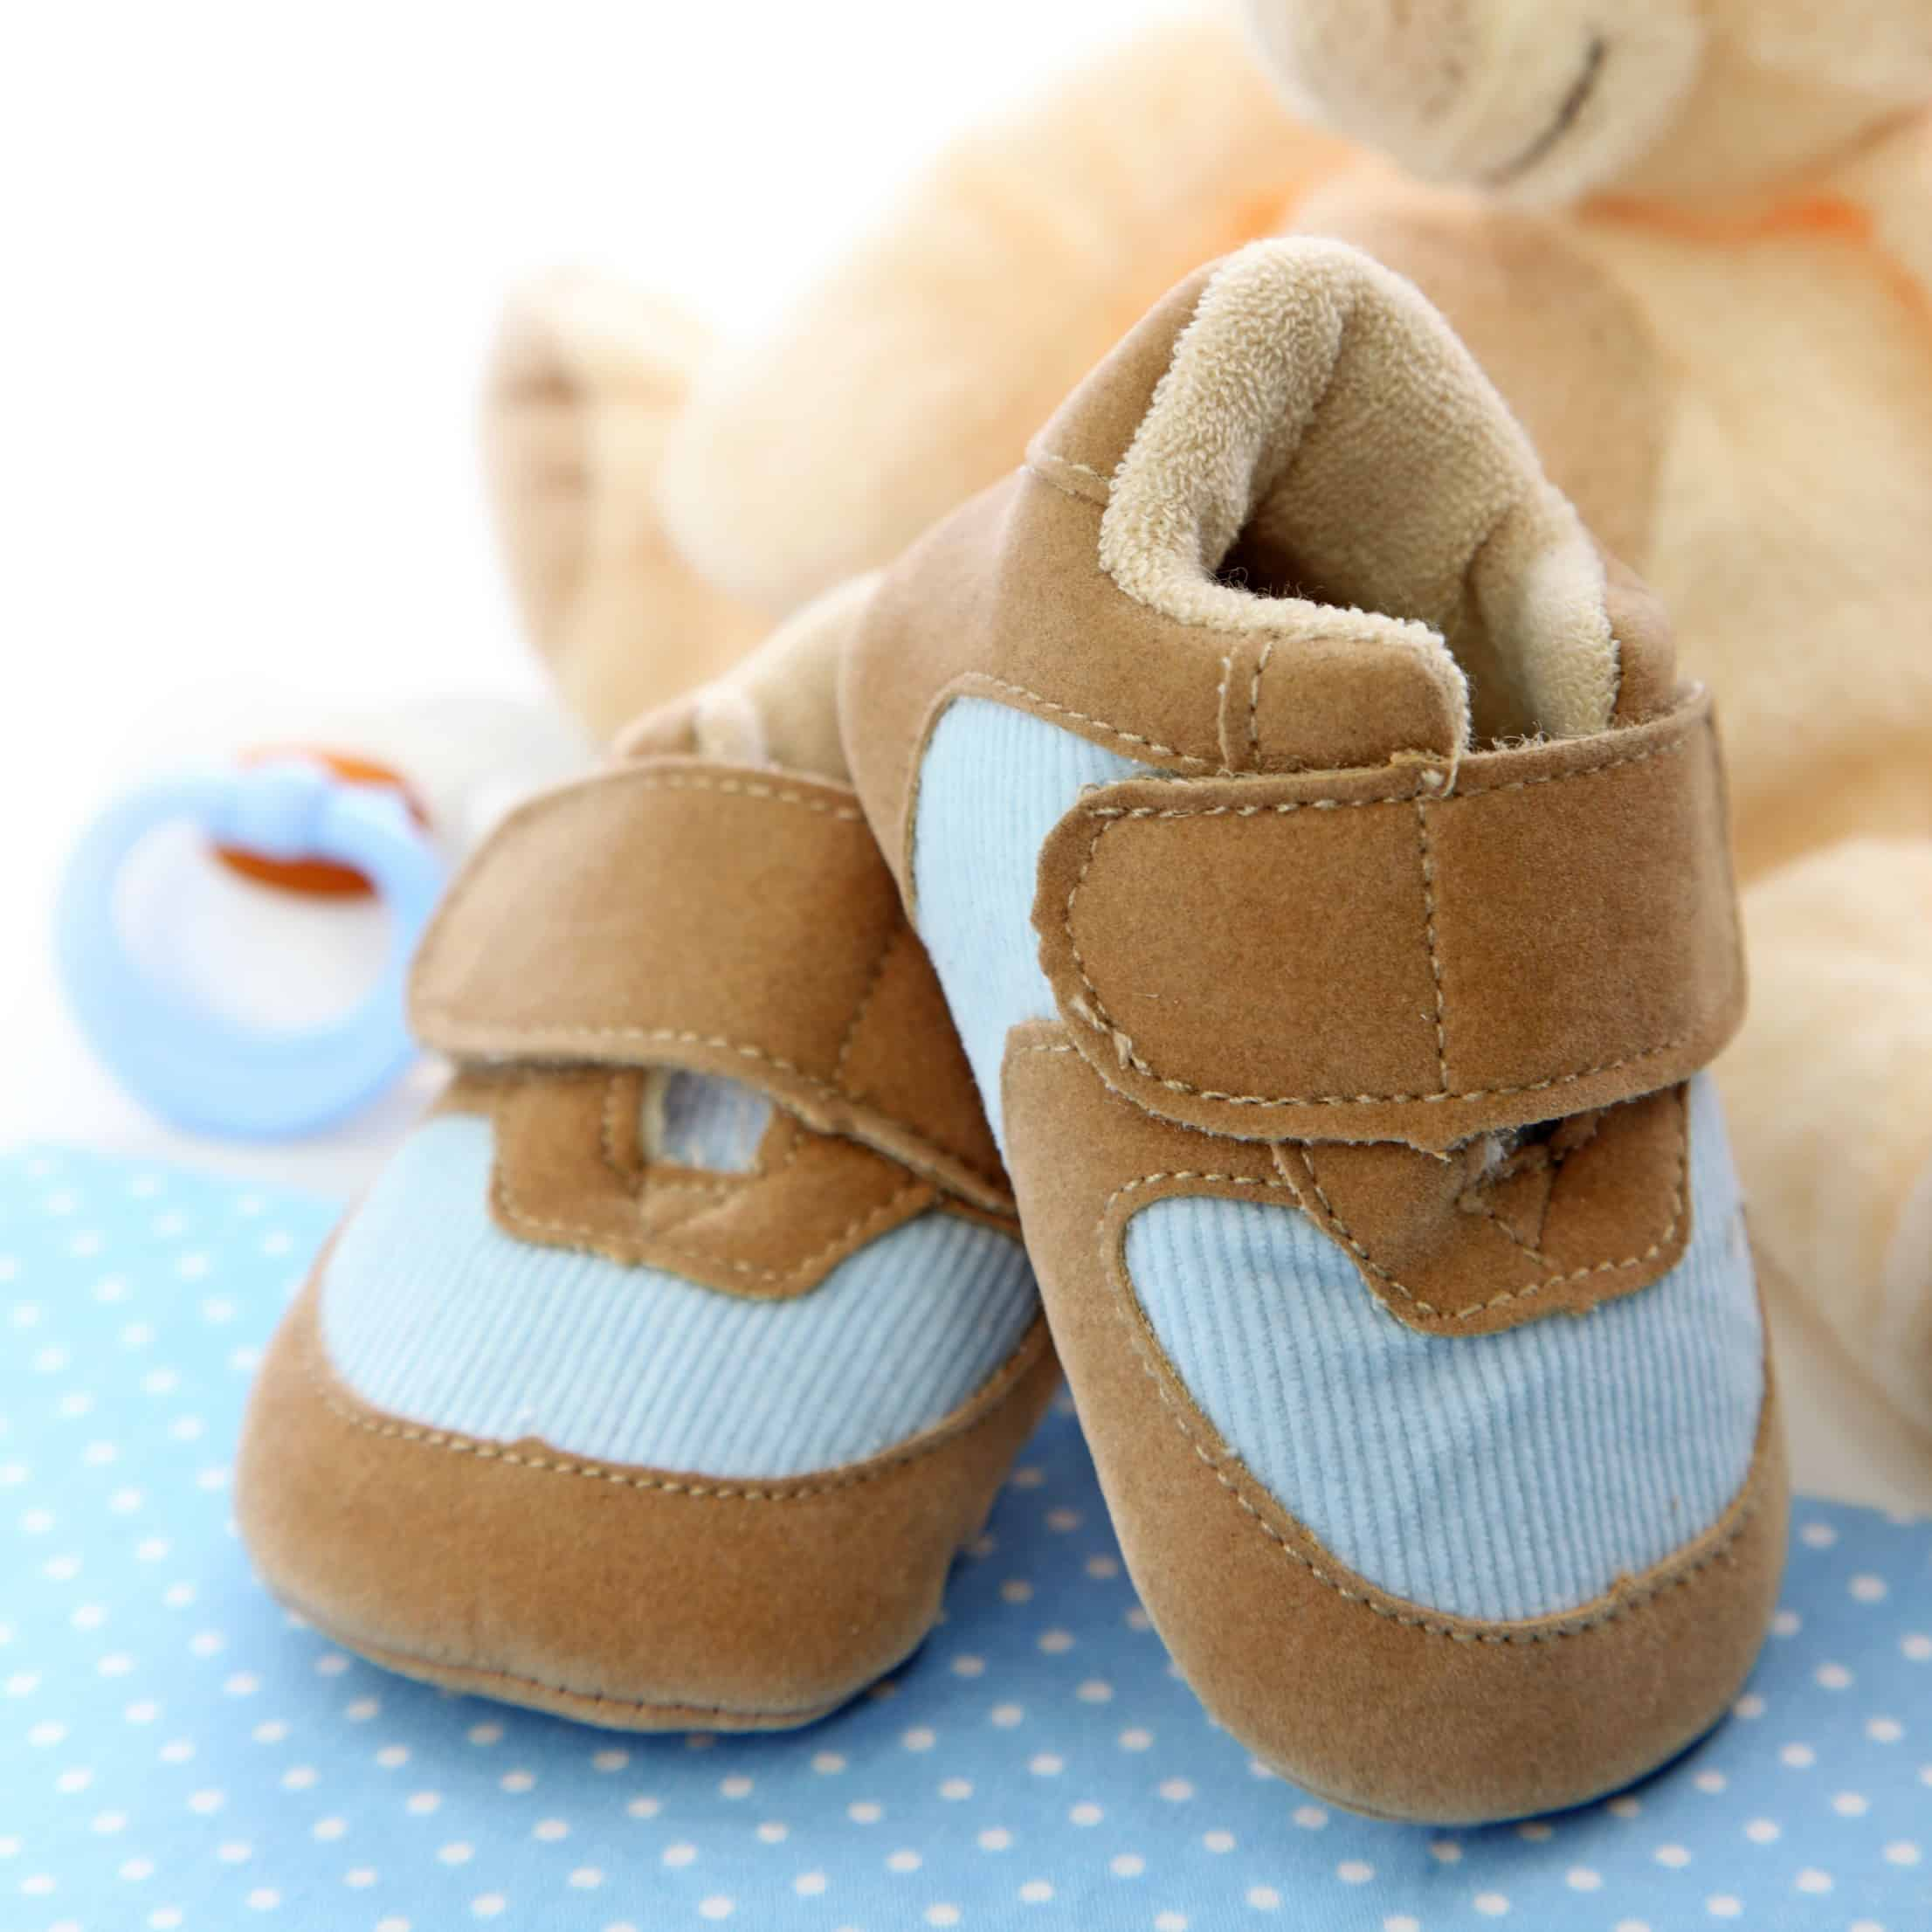 5 Common Baby Items You Don't Need (And What You Should Get Instead)